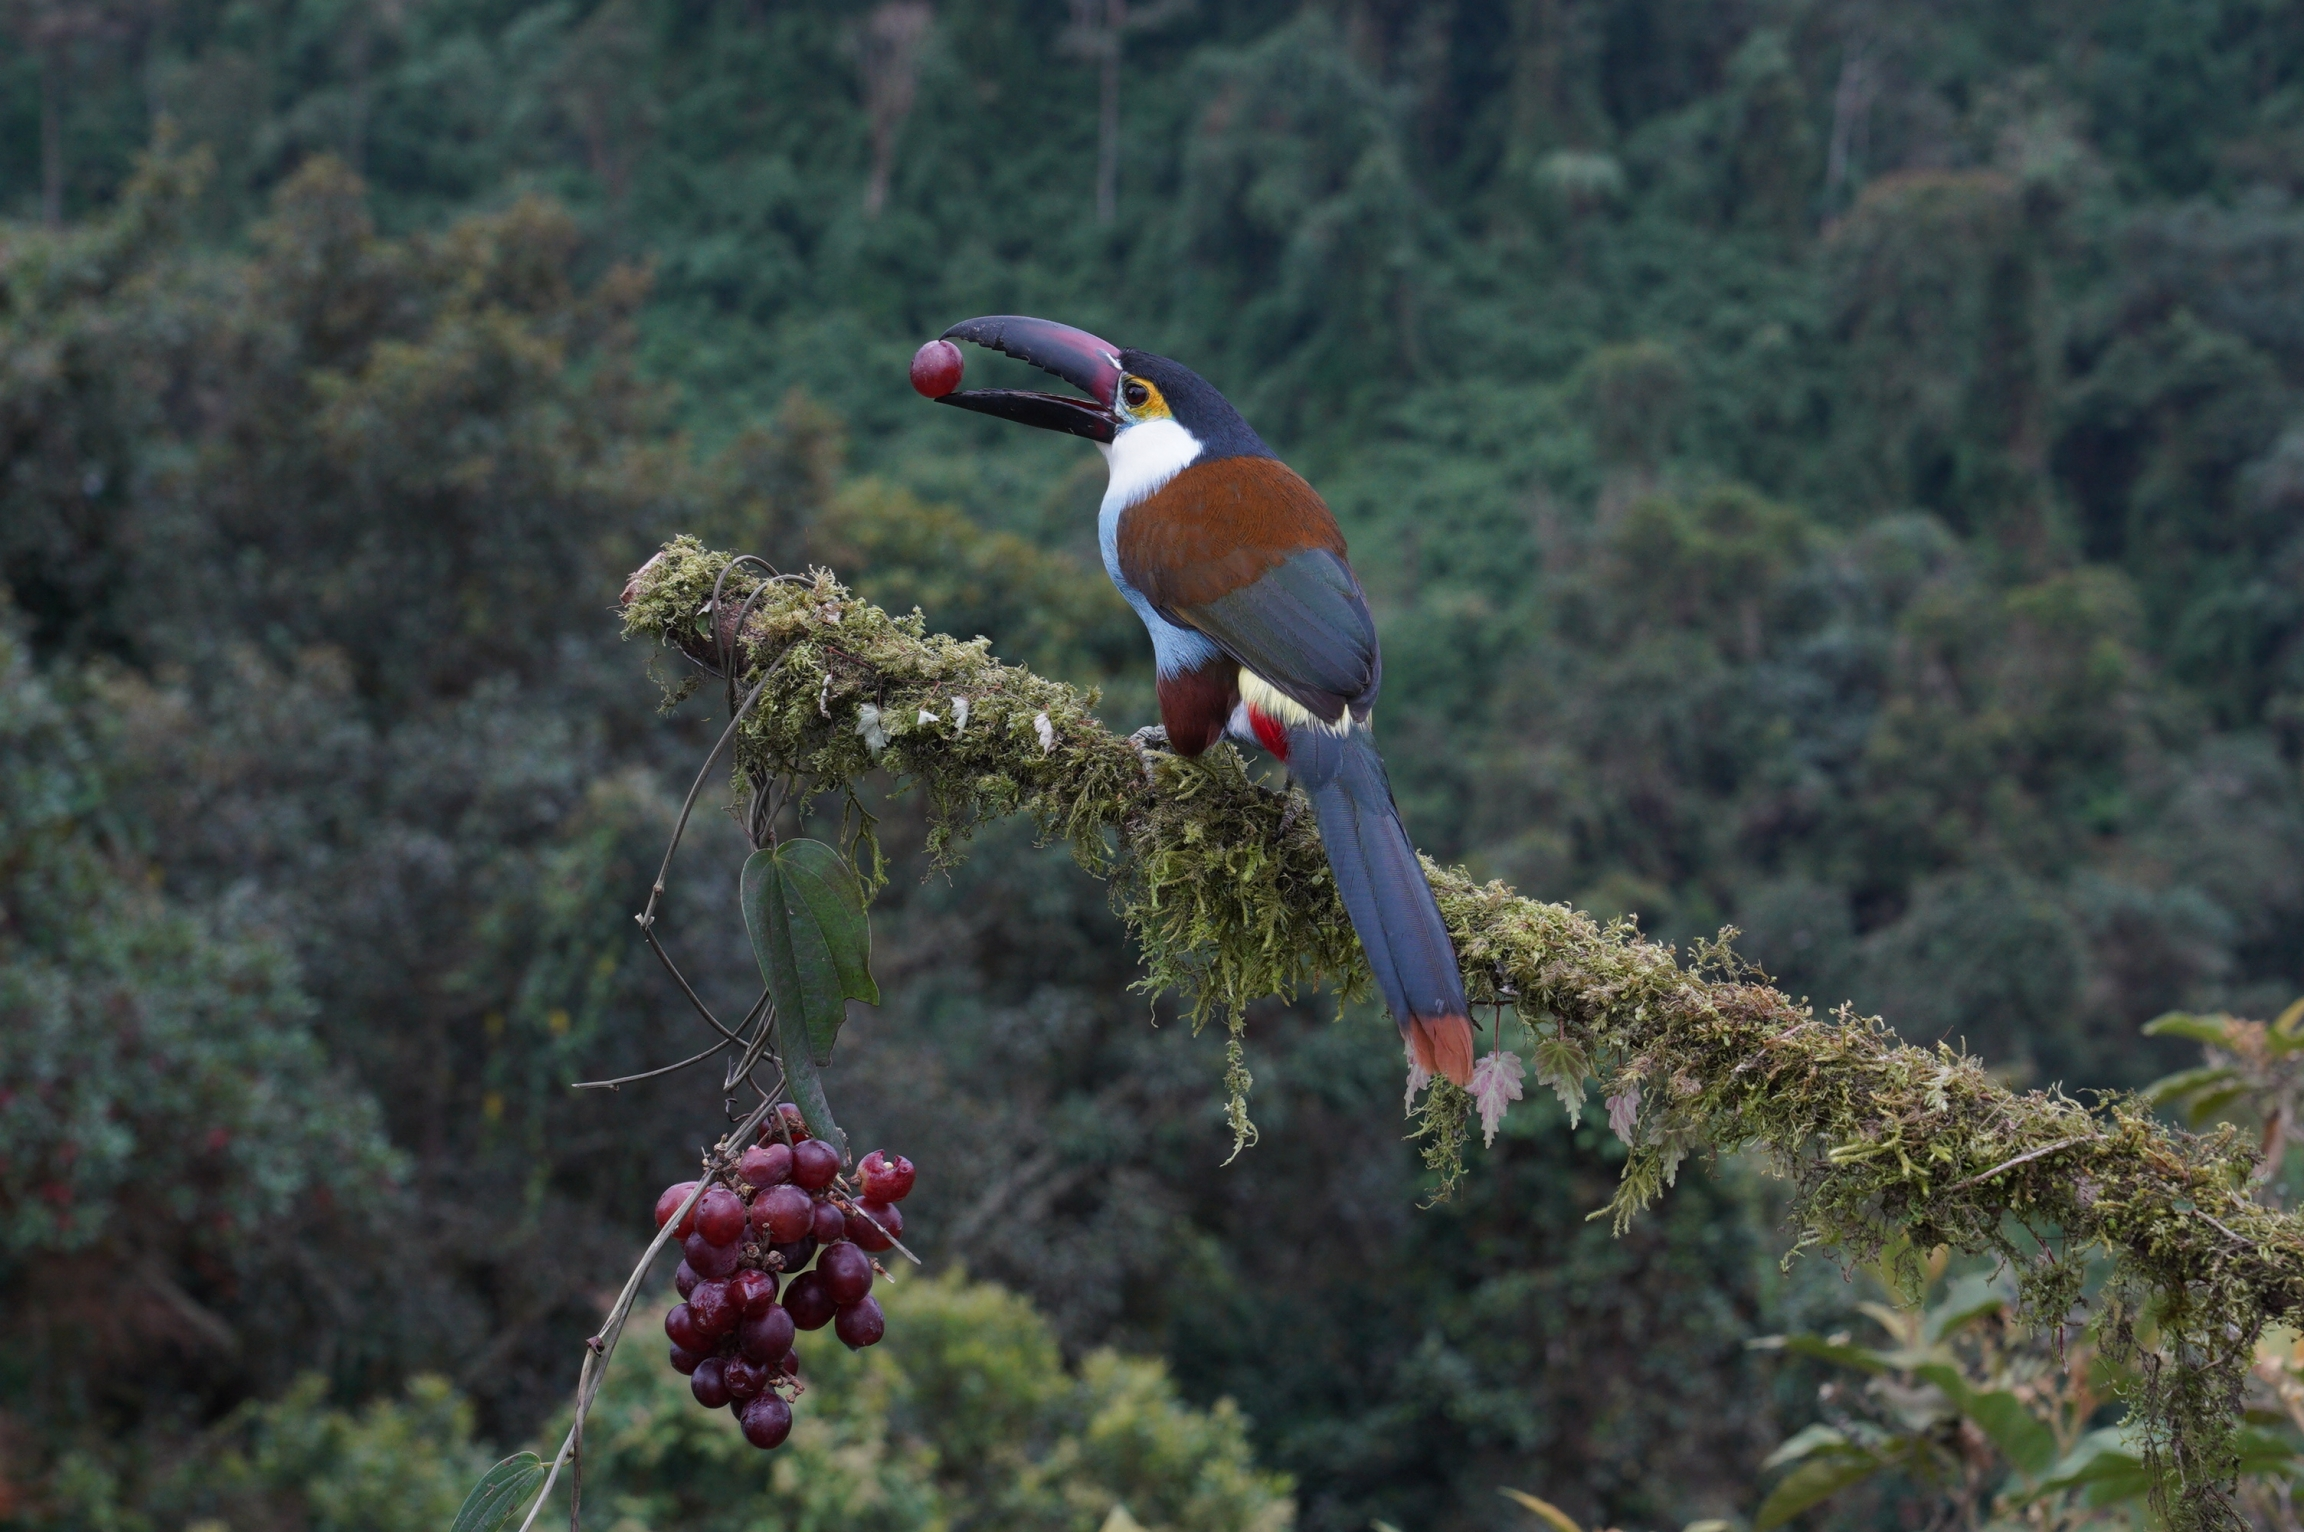 The Black Billed Mountain Toucan is one of the main attractions at El Color de Mis Reves, or the Color of My Dreams,  a birdwatching lodge near Manizales, Colombia.